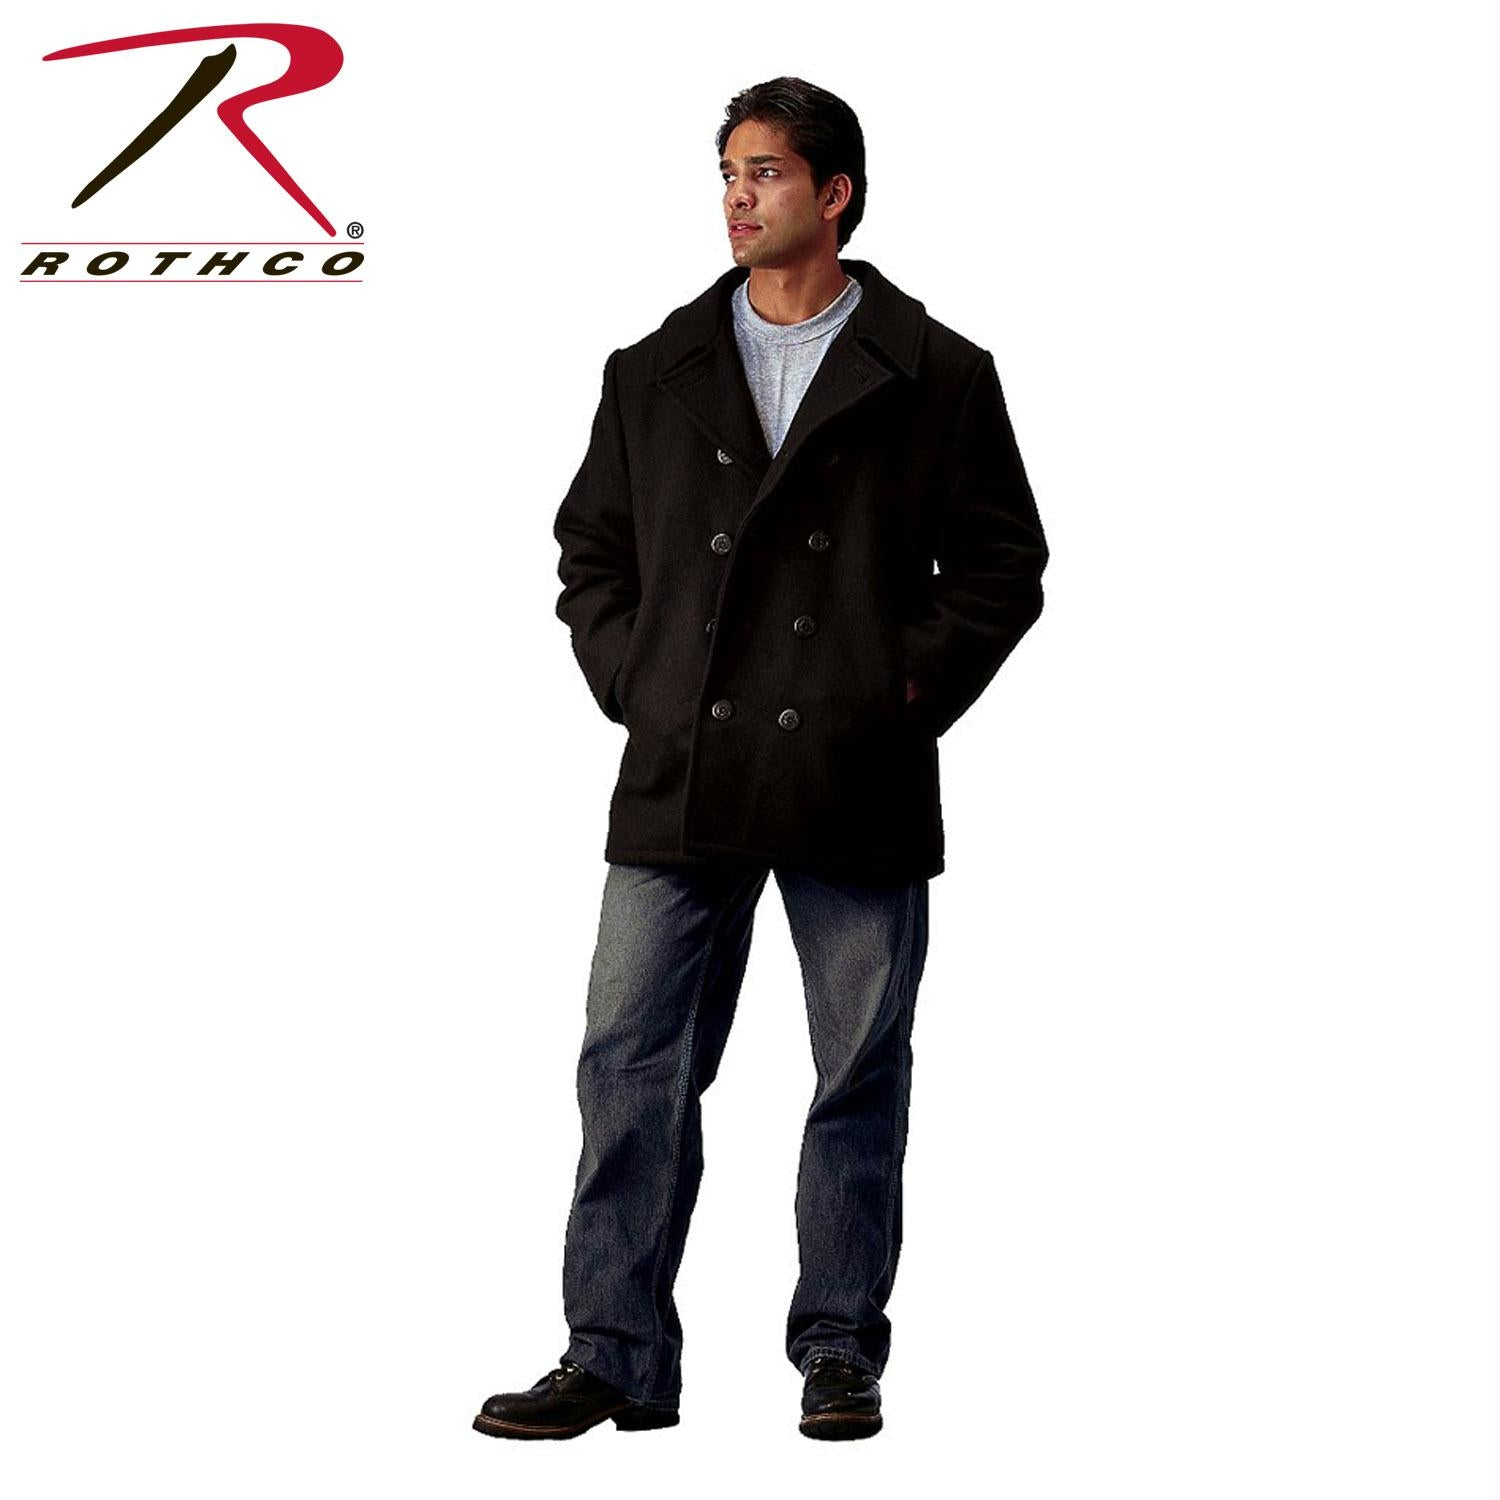 Rothco US Navy Type Pea Coat - Black / S